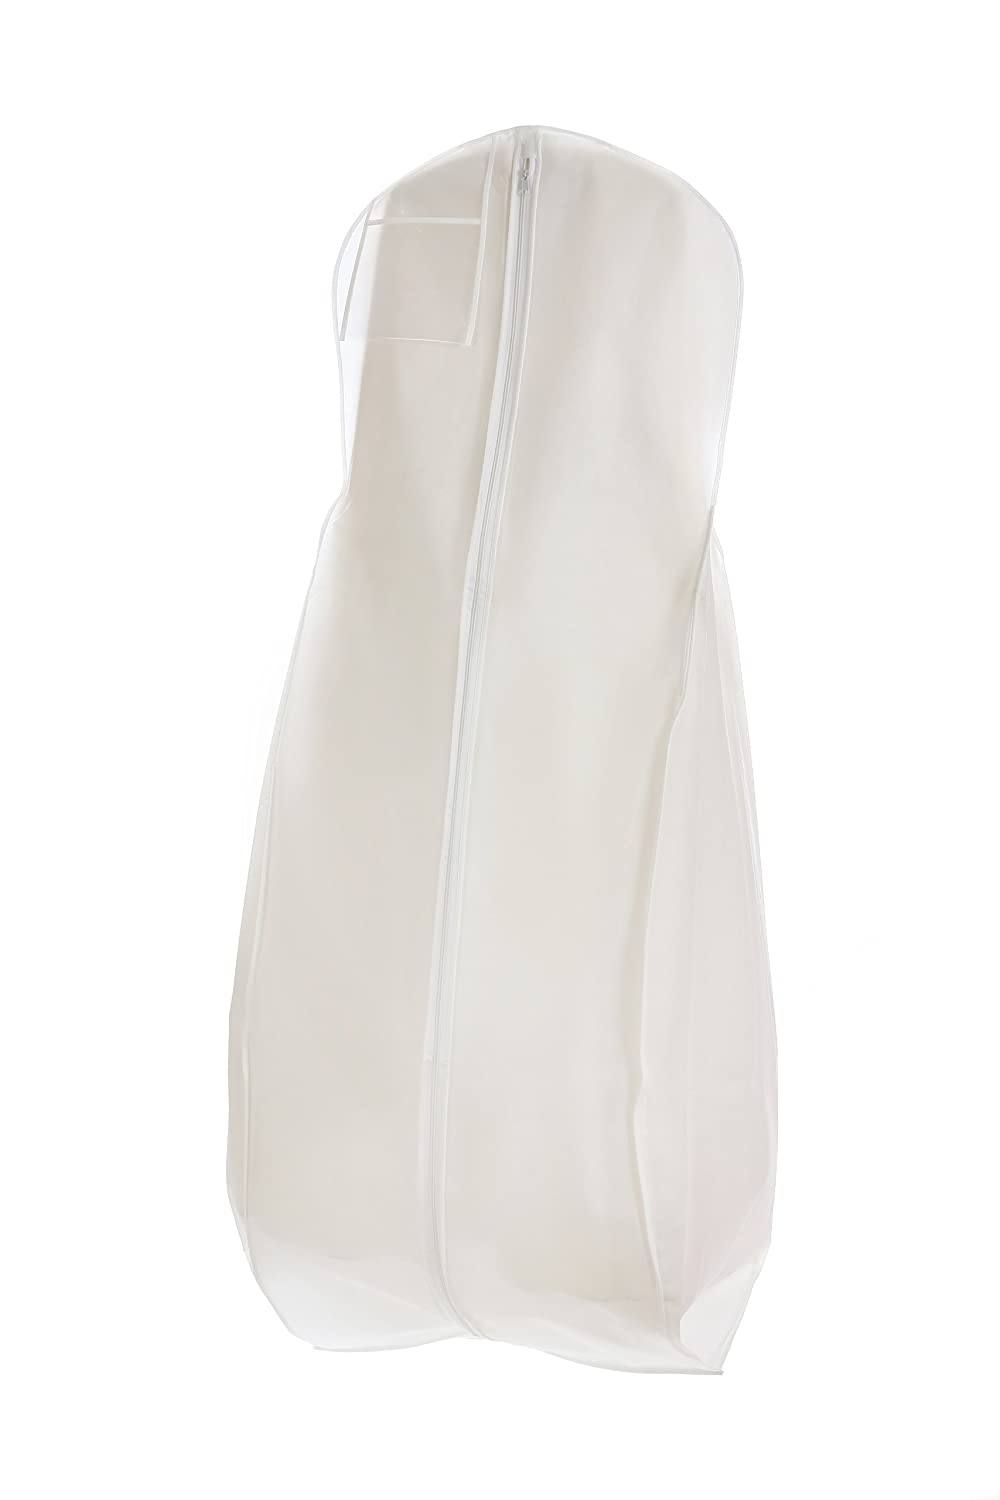 X Large Breathable White Wedding Gown Garment Bag Storage Huge Paneled Bottom